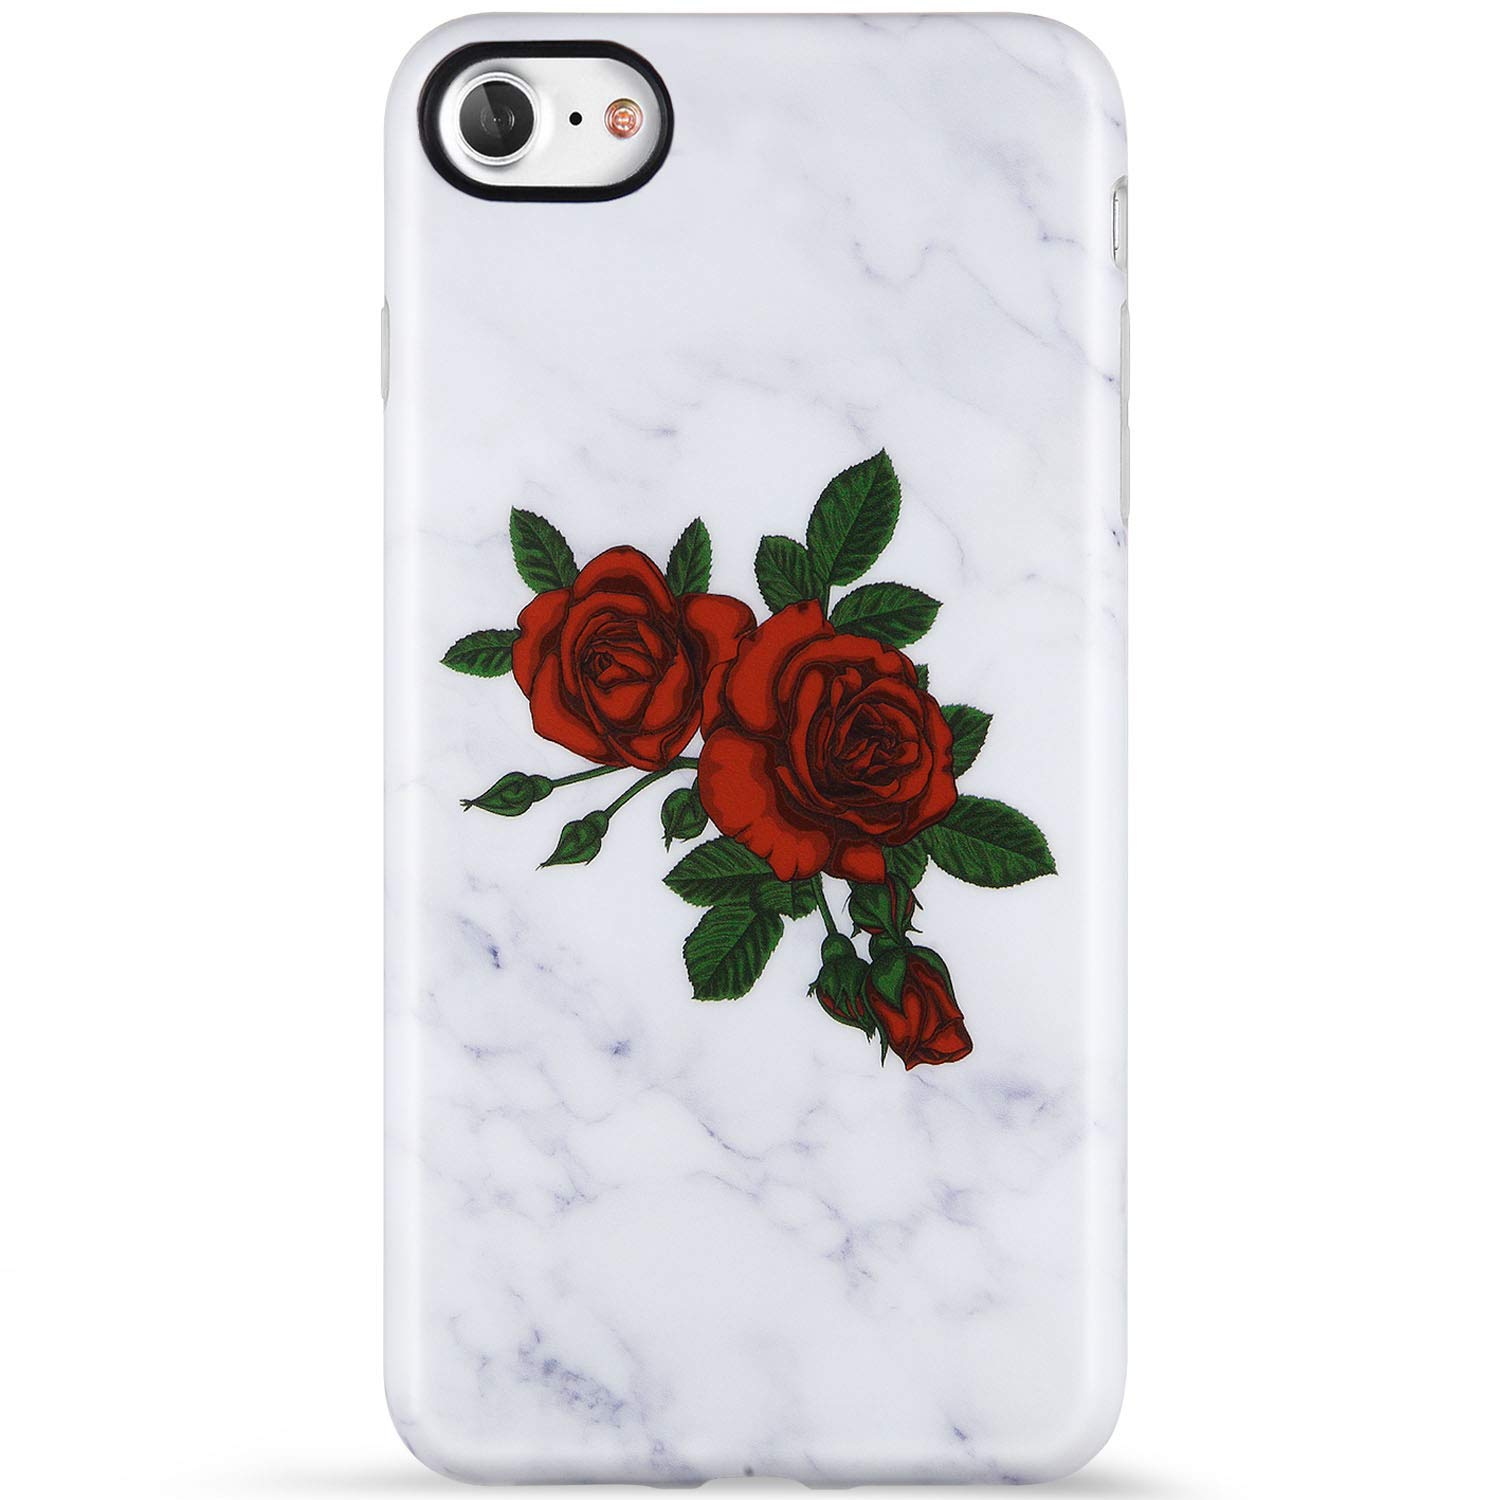 iphone 7 case red rose